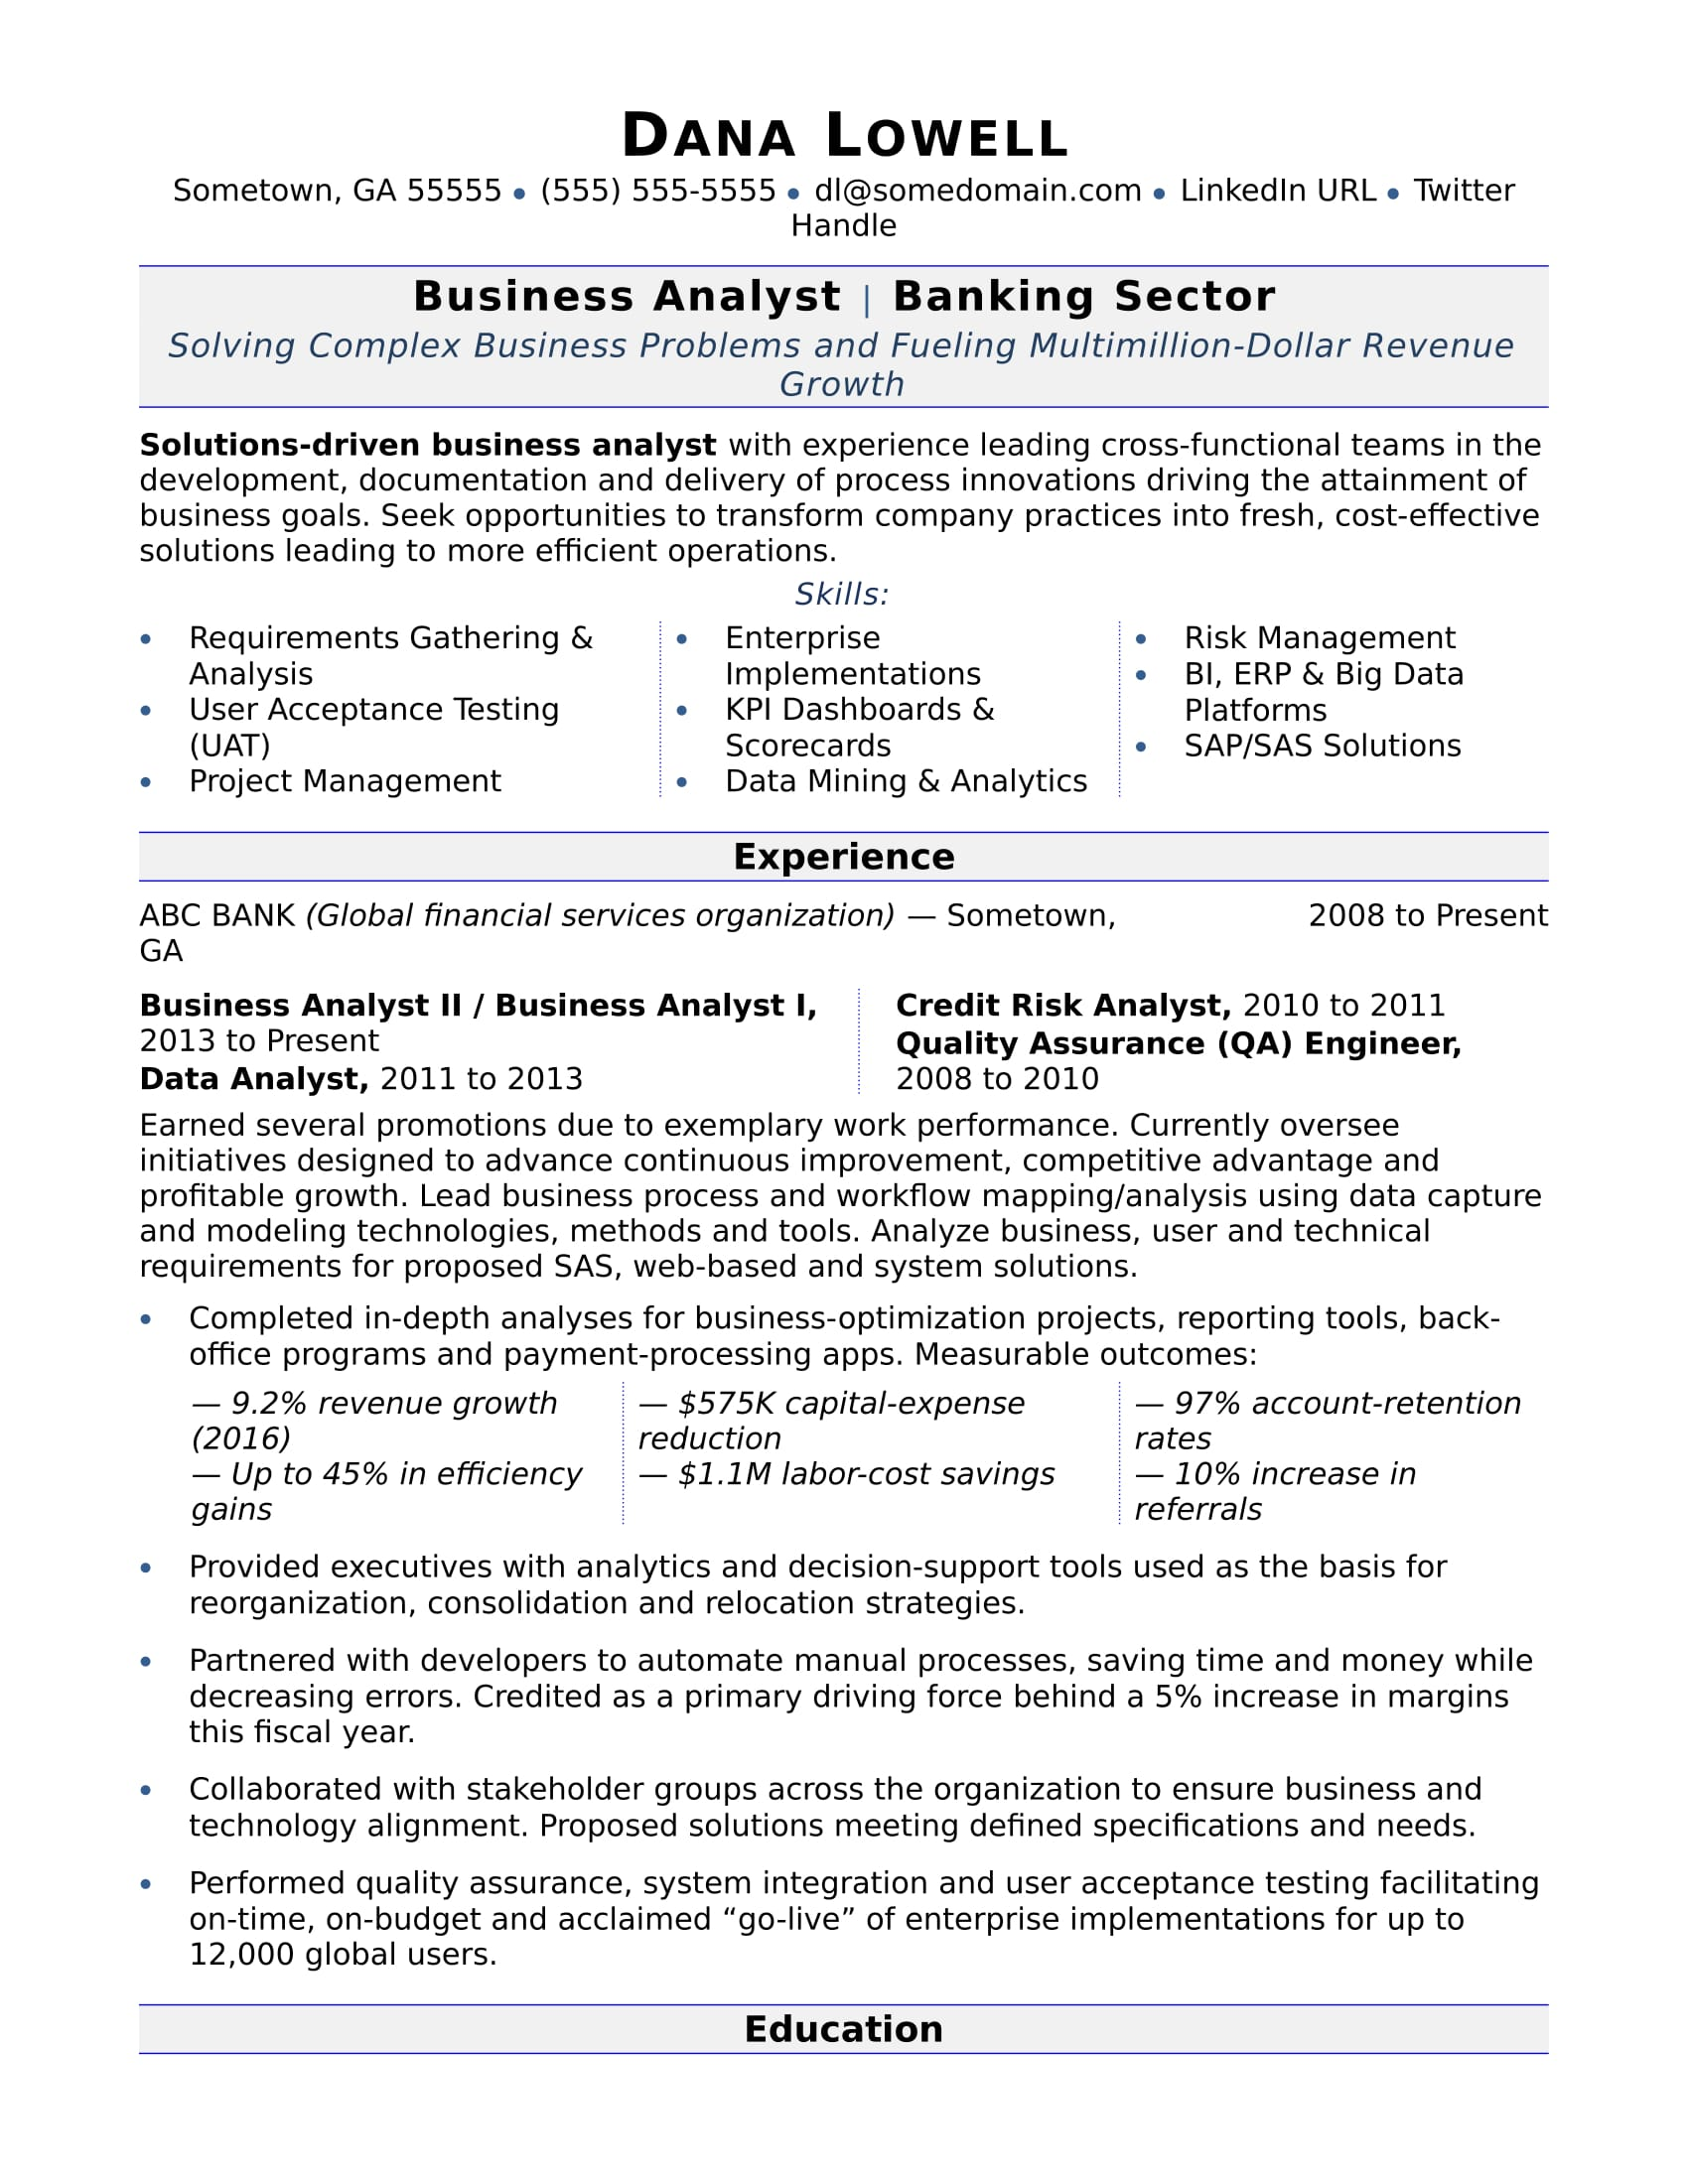 business analyst resume sample monster lead businessanalyst proactive synonym ux research Resume Lead Business Analyst Resume